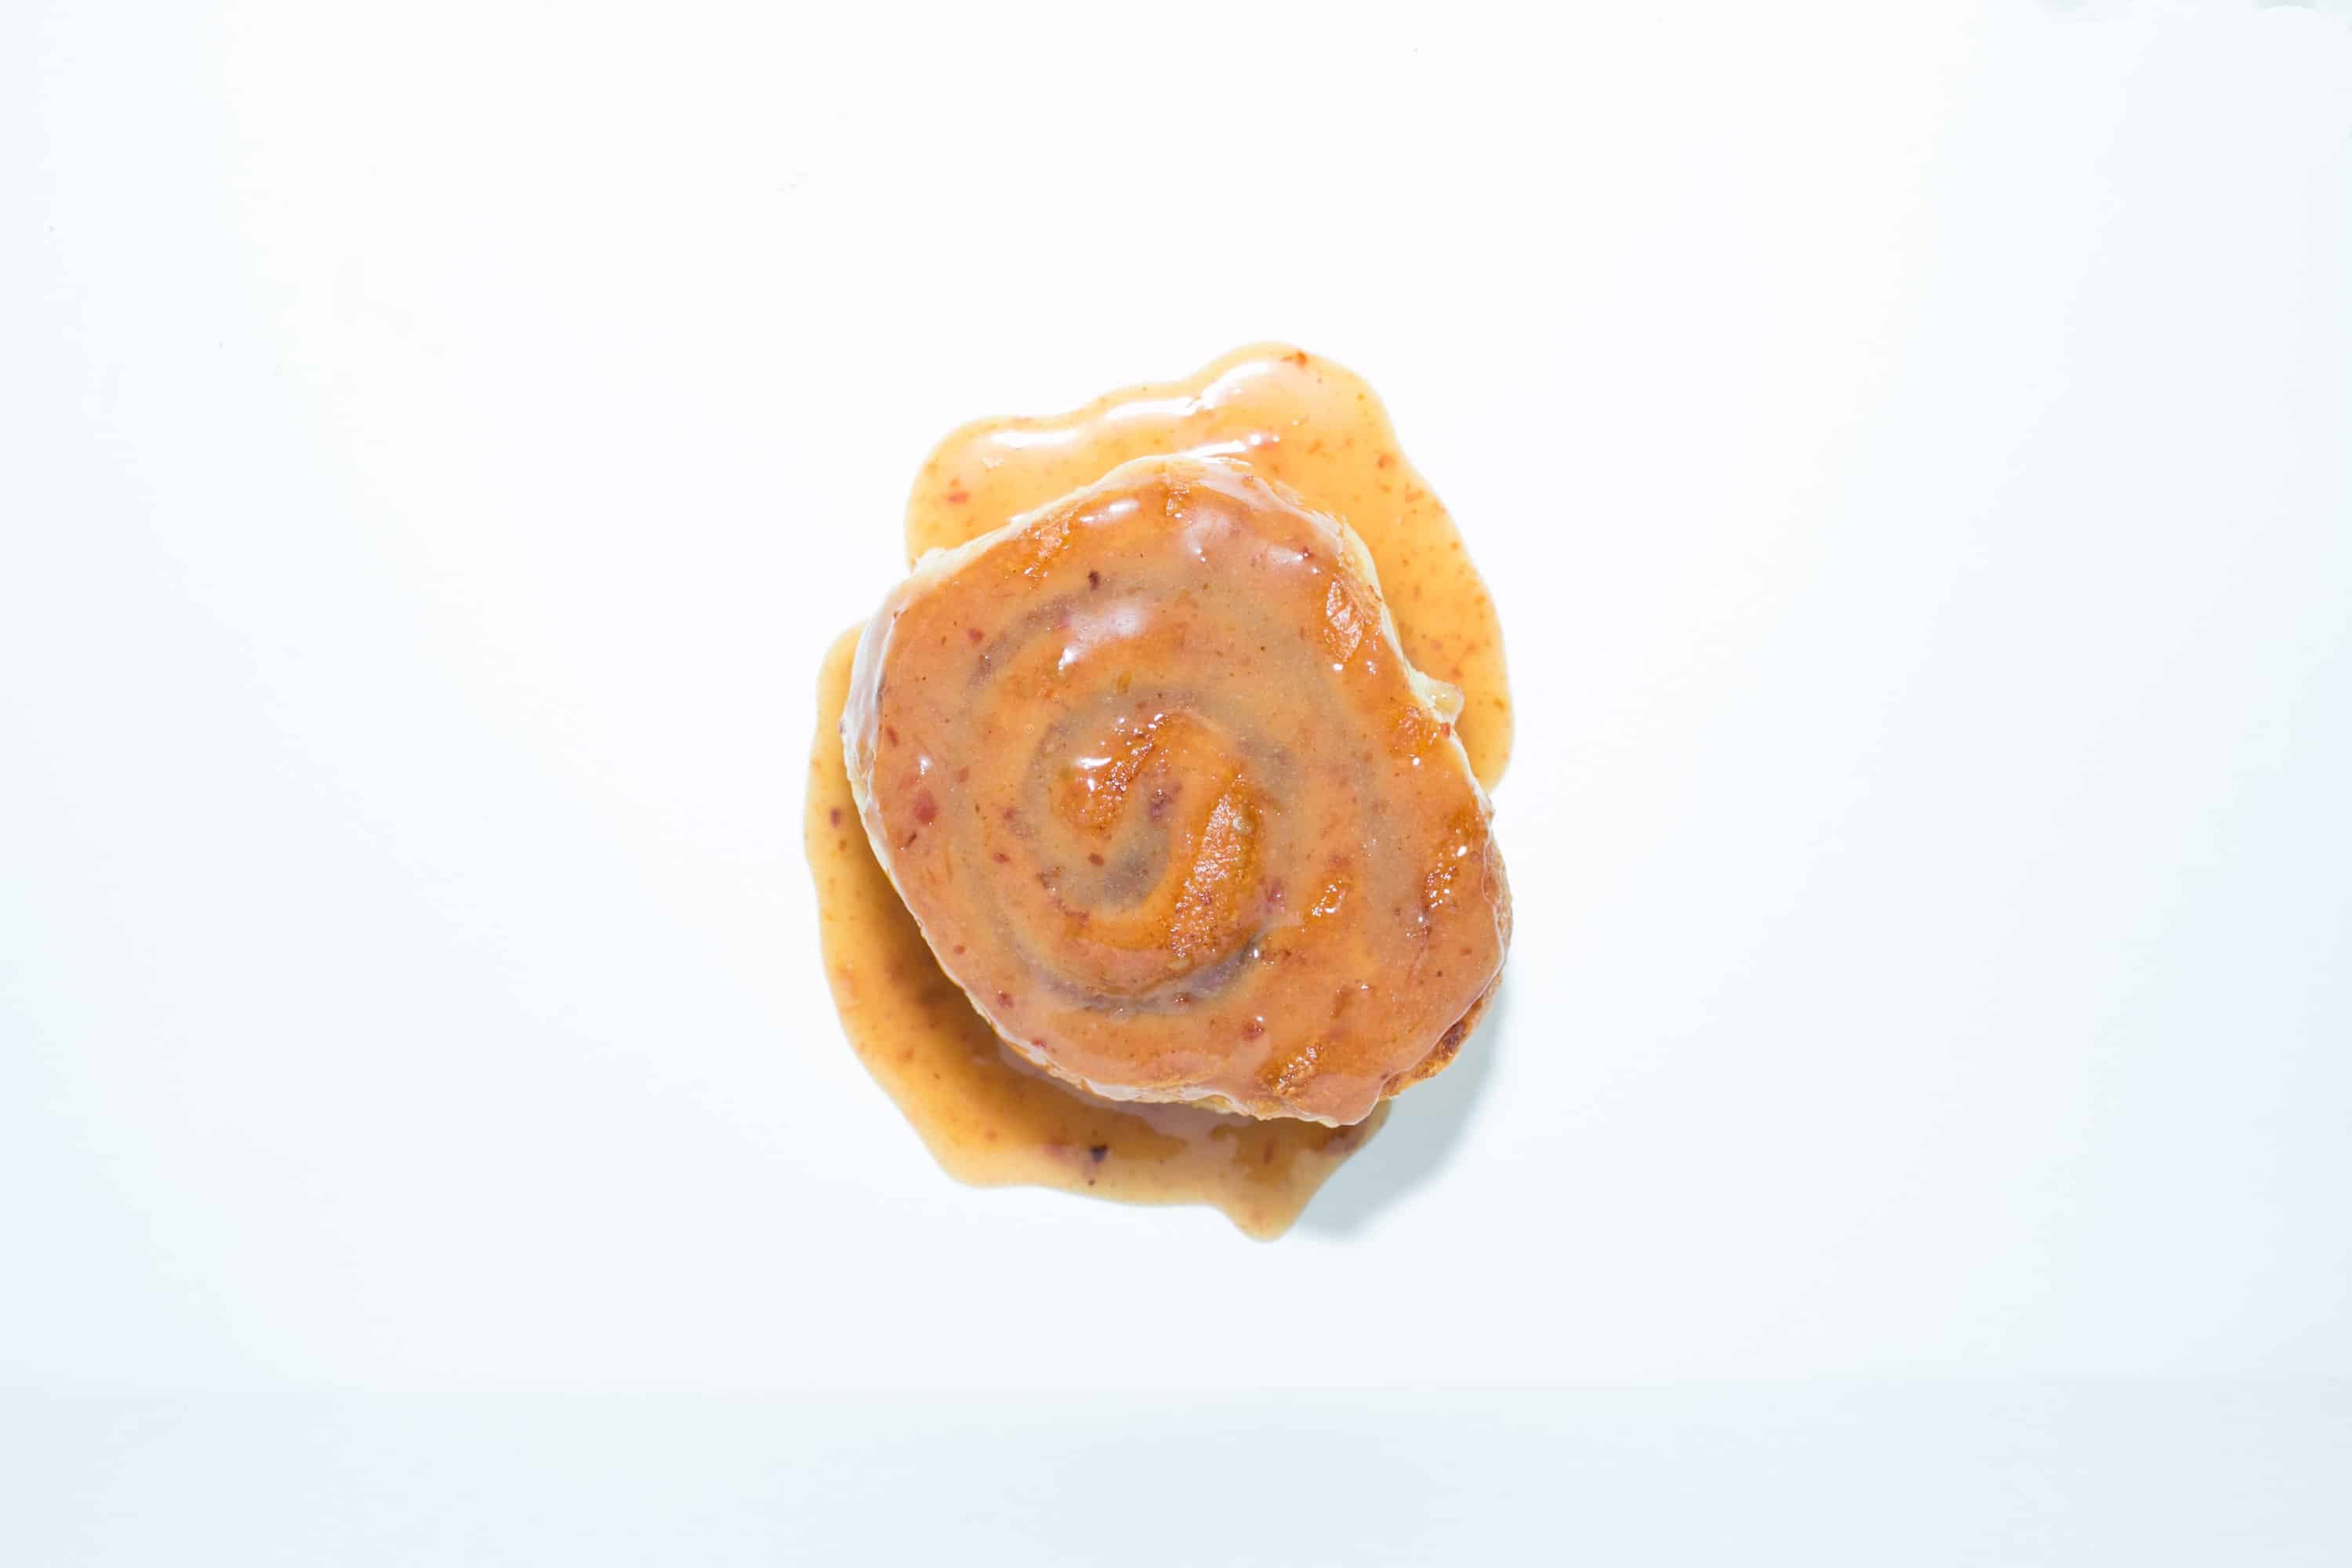 sticky fingaz cinnamon roll on white background